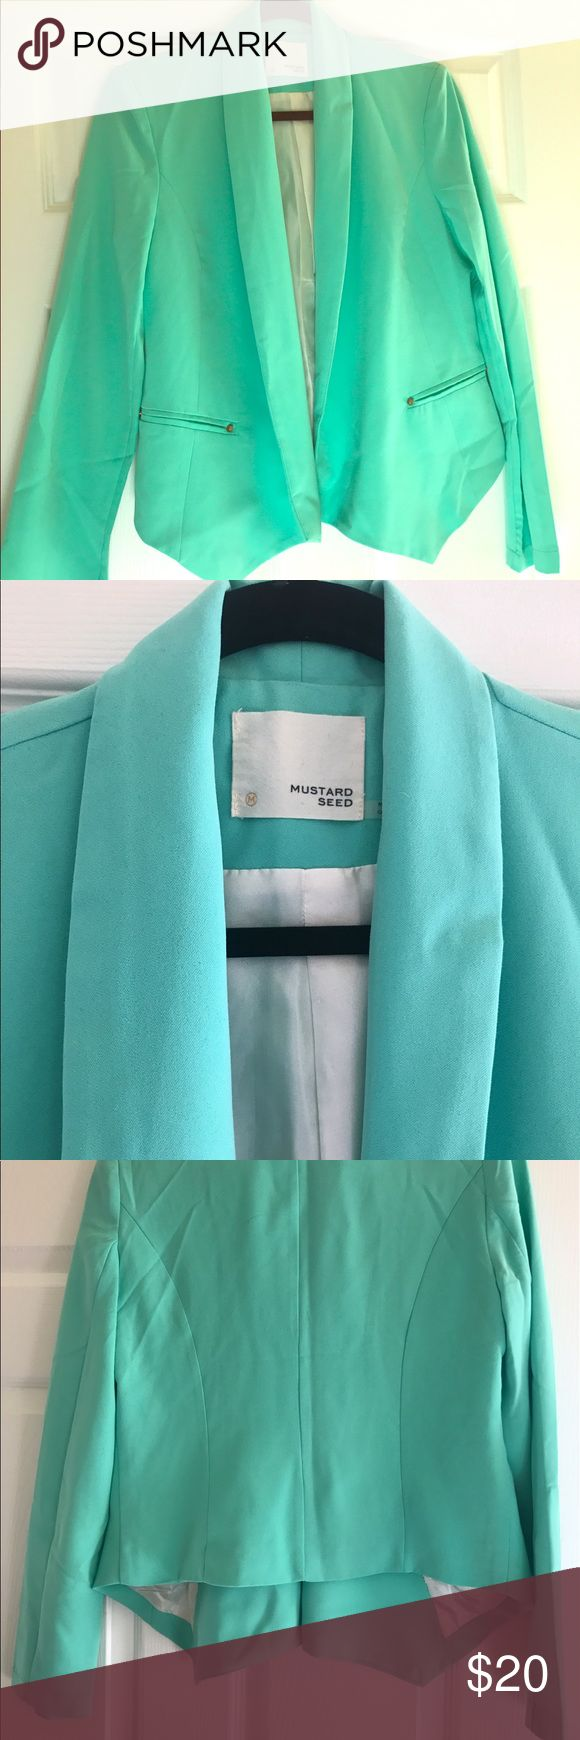 Mint Blazer It's the most beautiful mint color I've ever seen, it has full length arms, the pockets are fake, and it has the most gorgeous shape when you put it on. The fabric feels so soft. New without tags. Mustard Seed Jackets & Coats Blazers